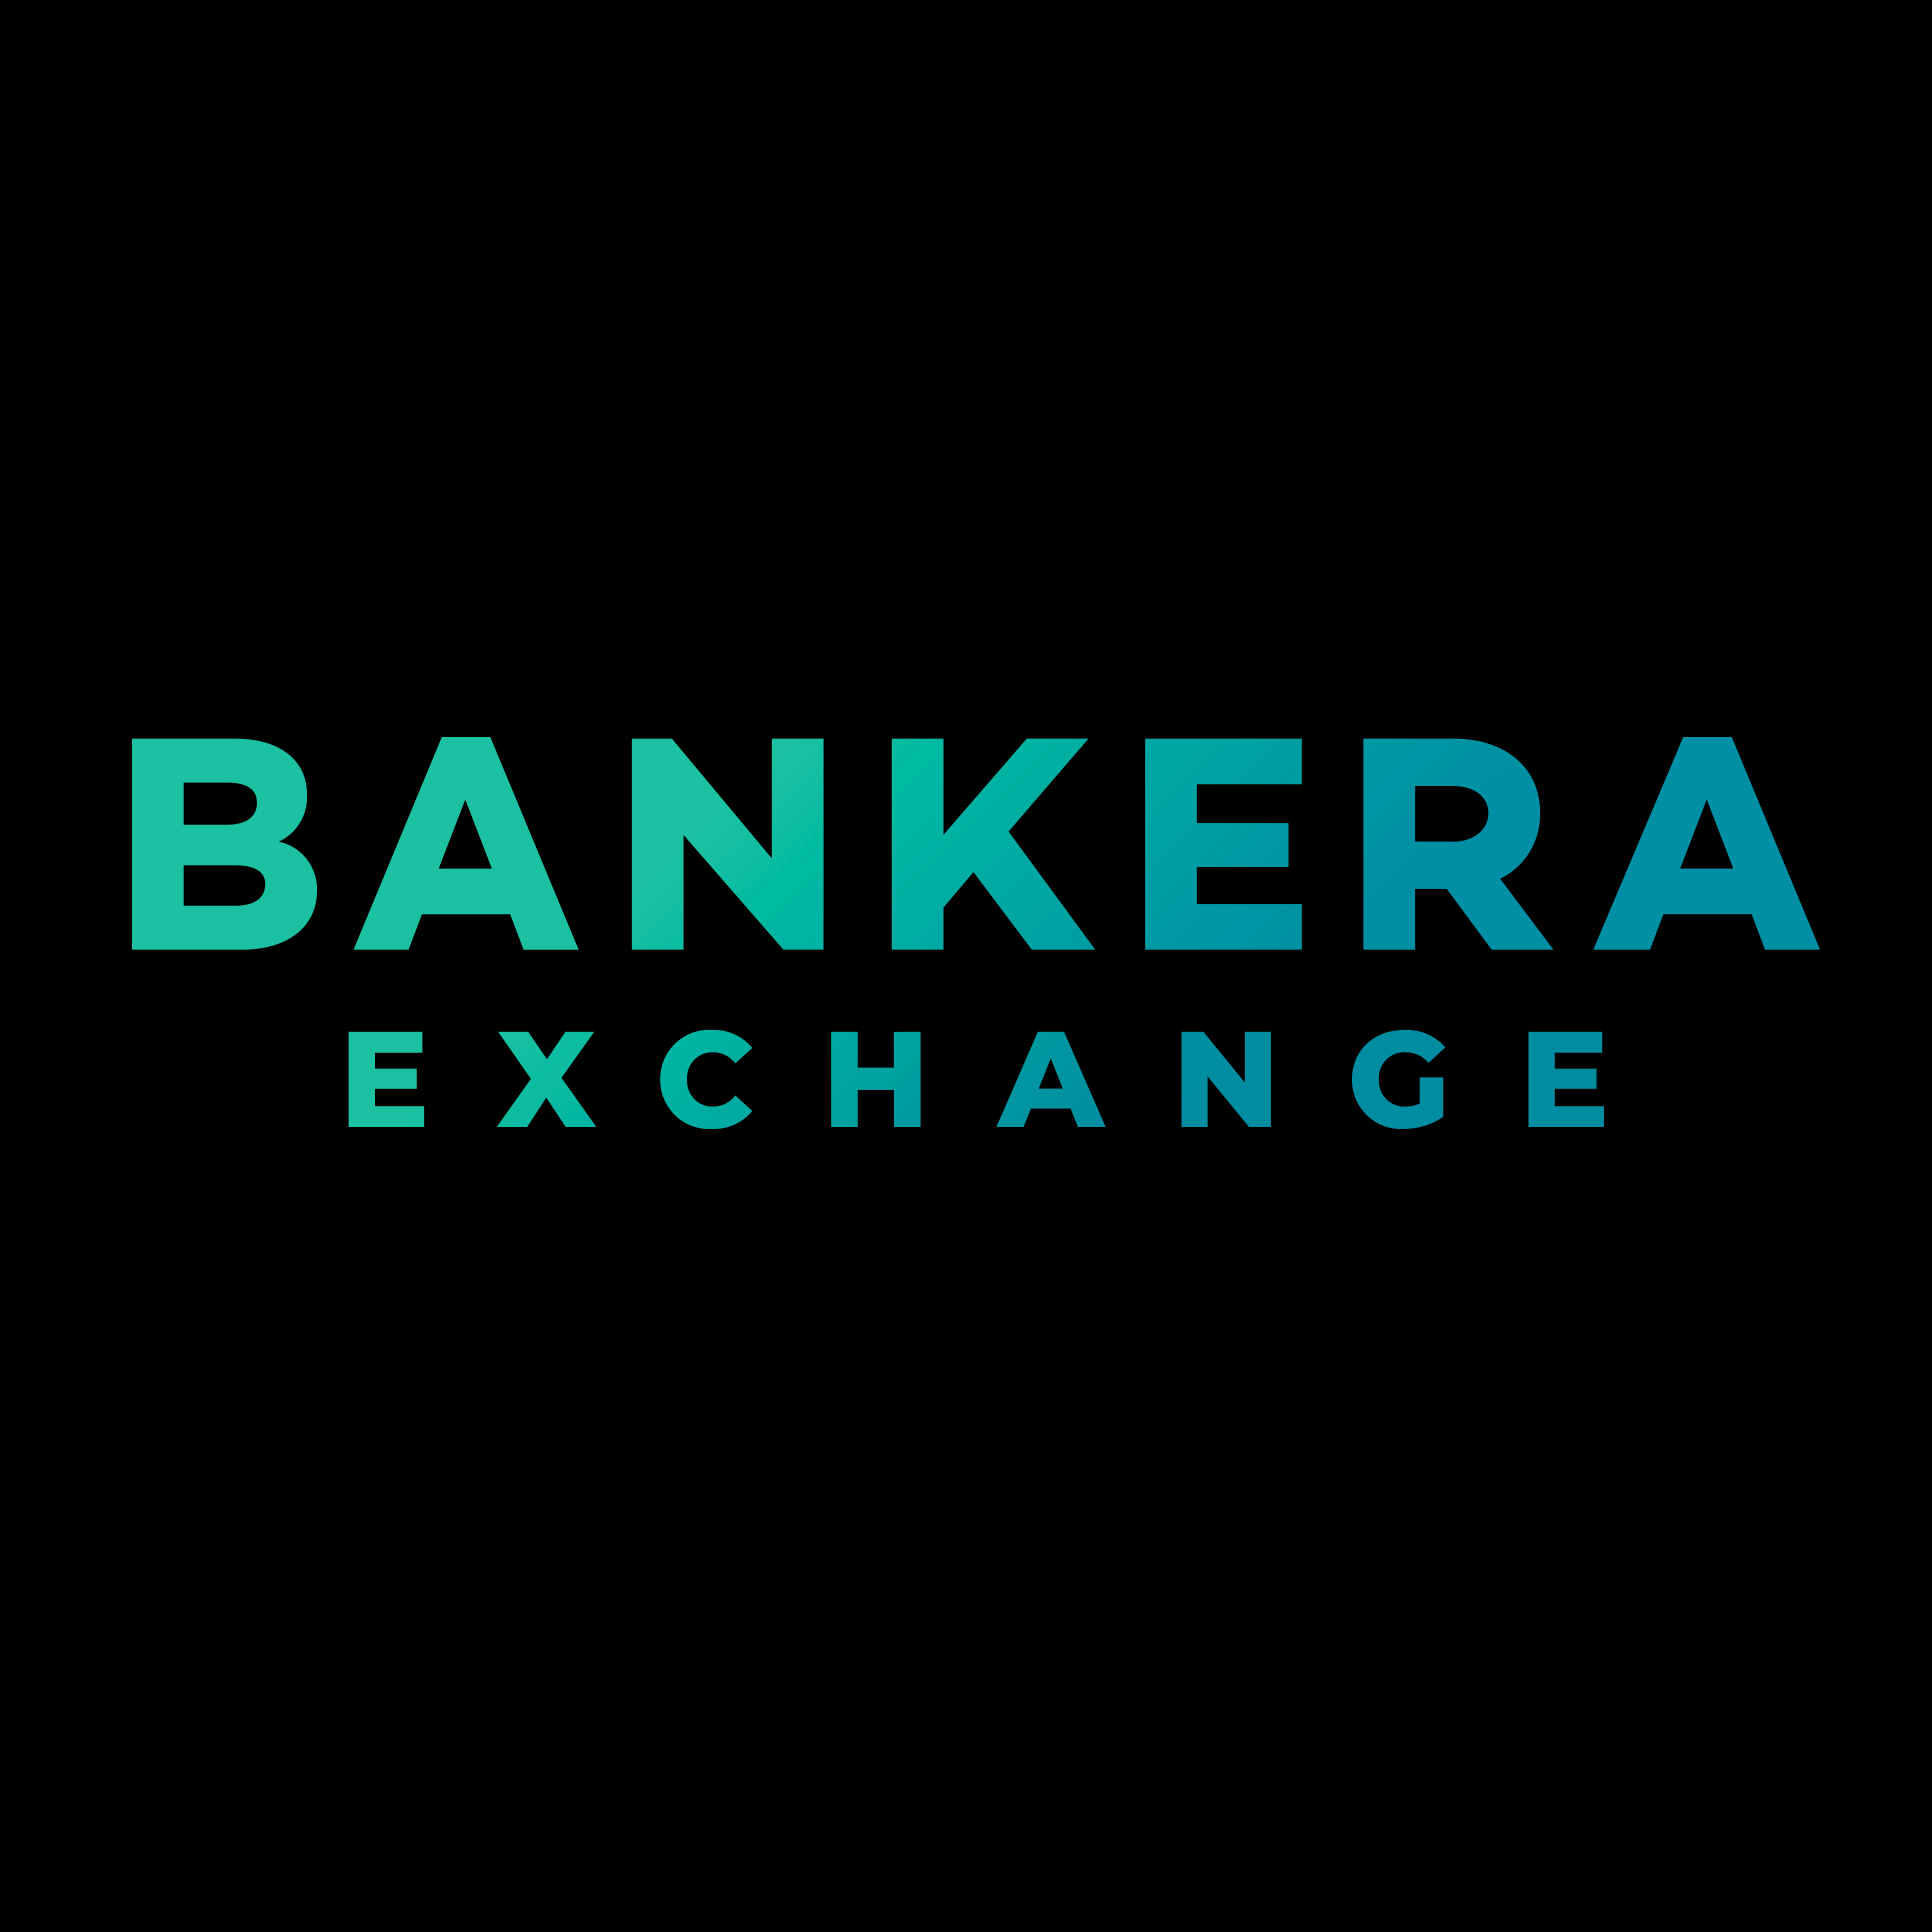 Bankera Exchangelogo